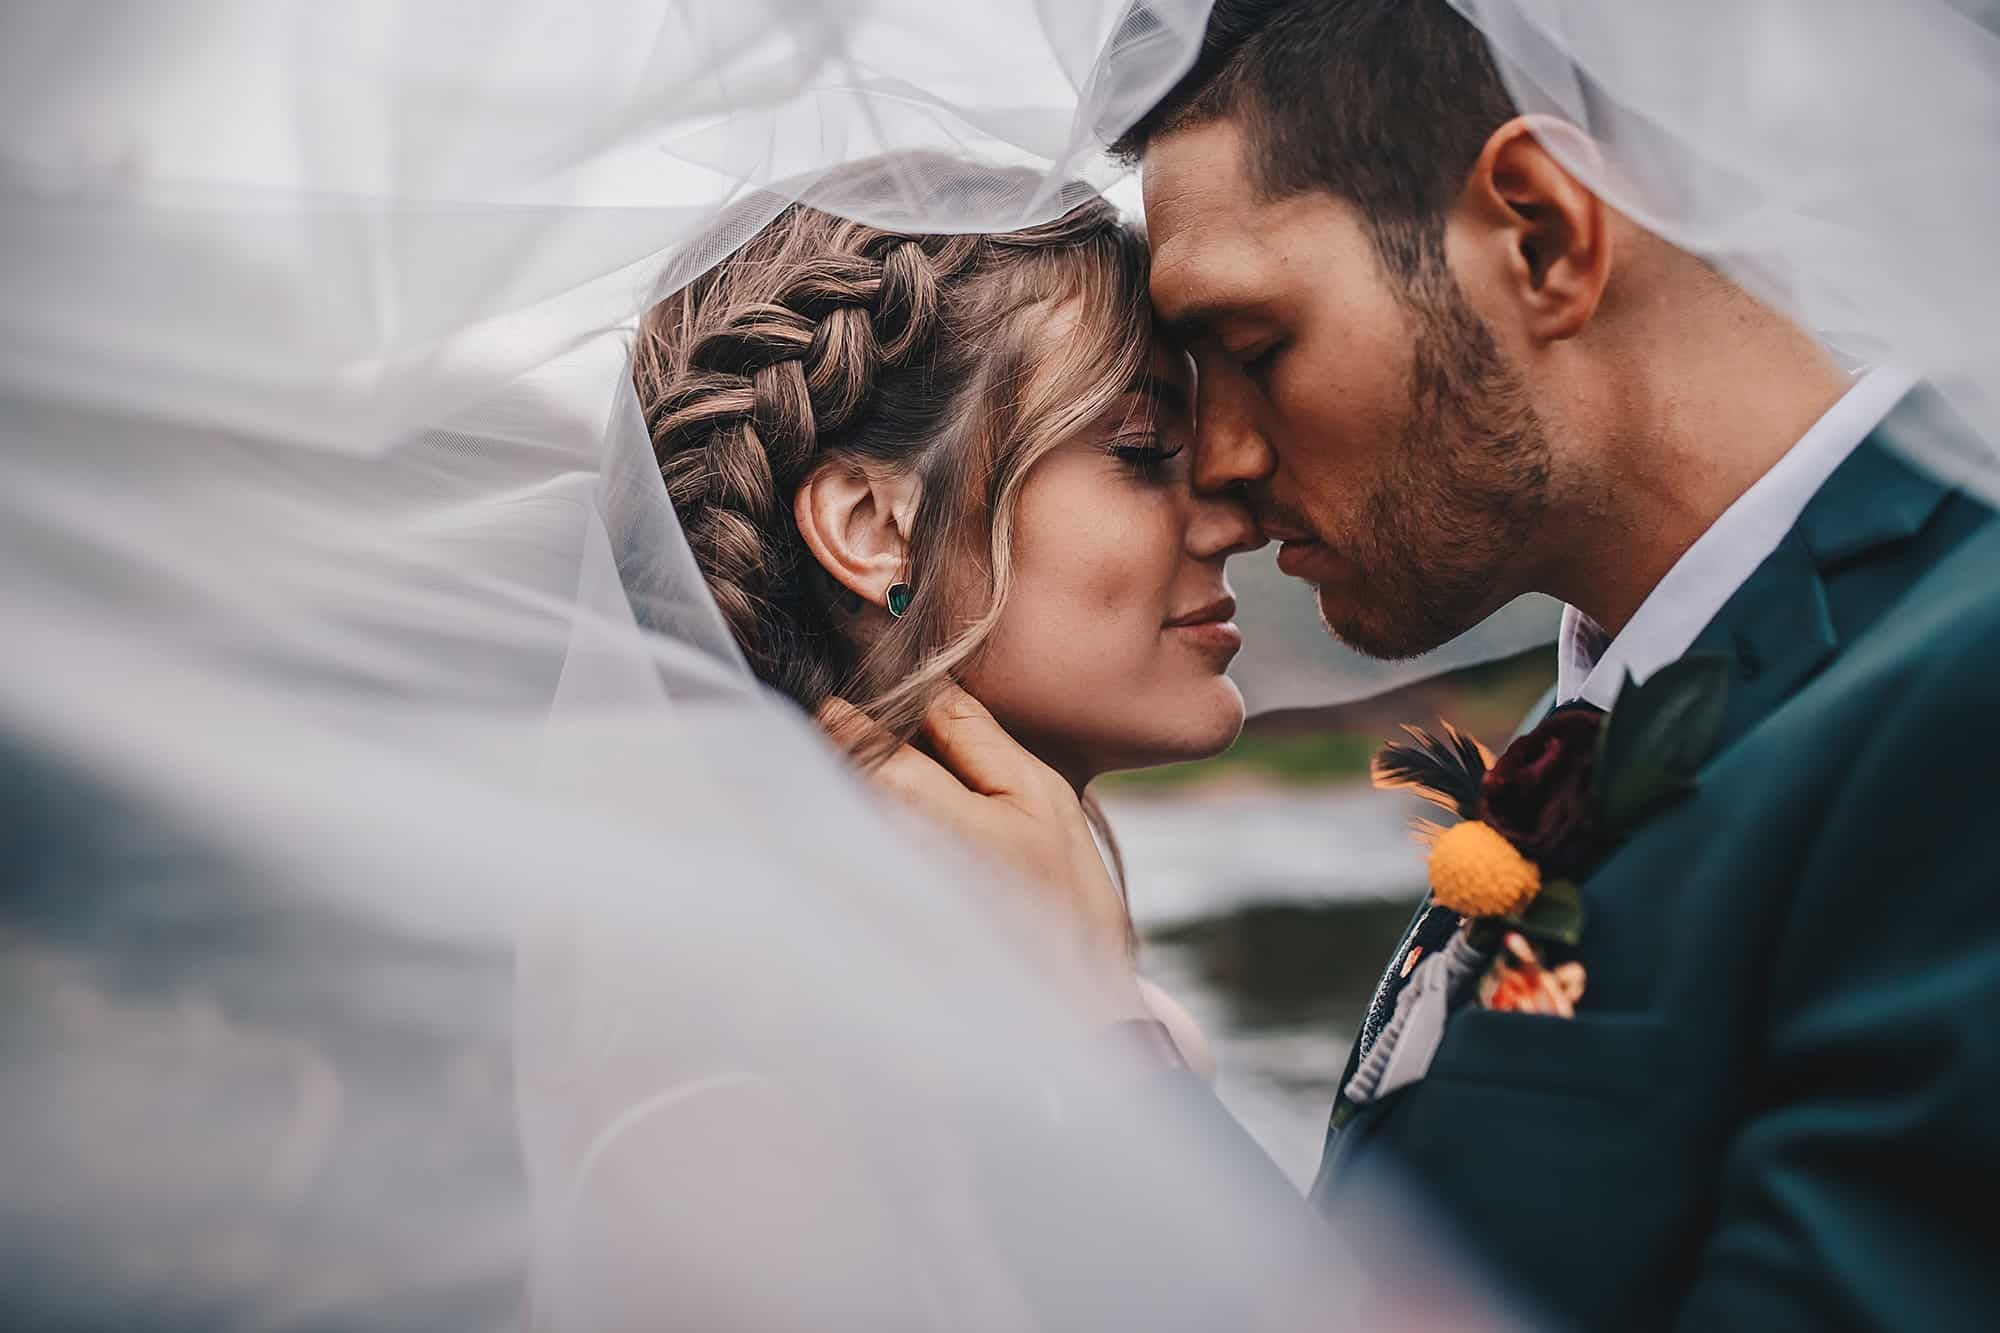 The Best Wedding Photographers Of 2019 Their Amazing Images In 2020 Best Wedding Photographers Romantic Wedding Photographer Wedding Photos